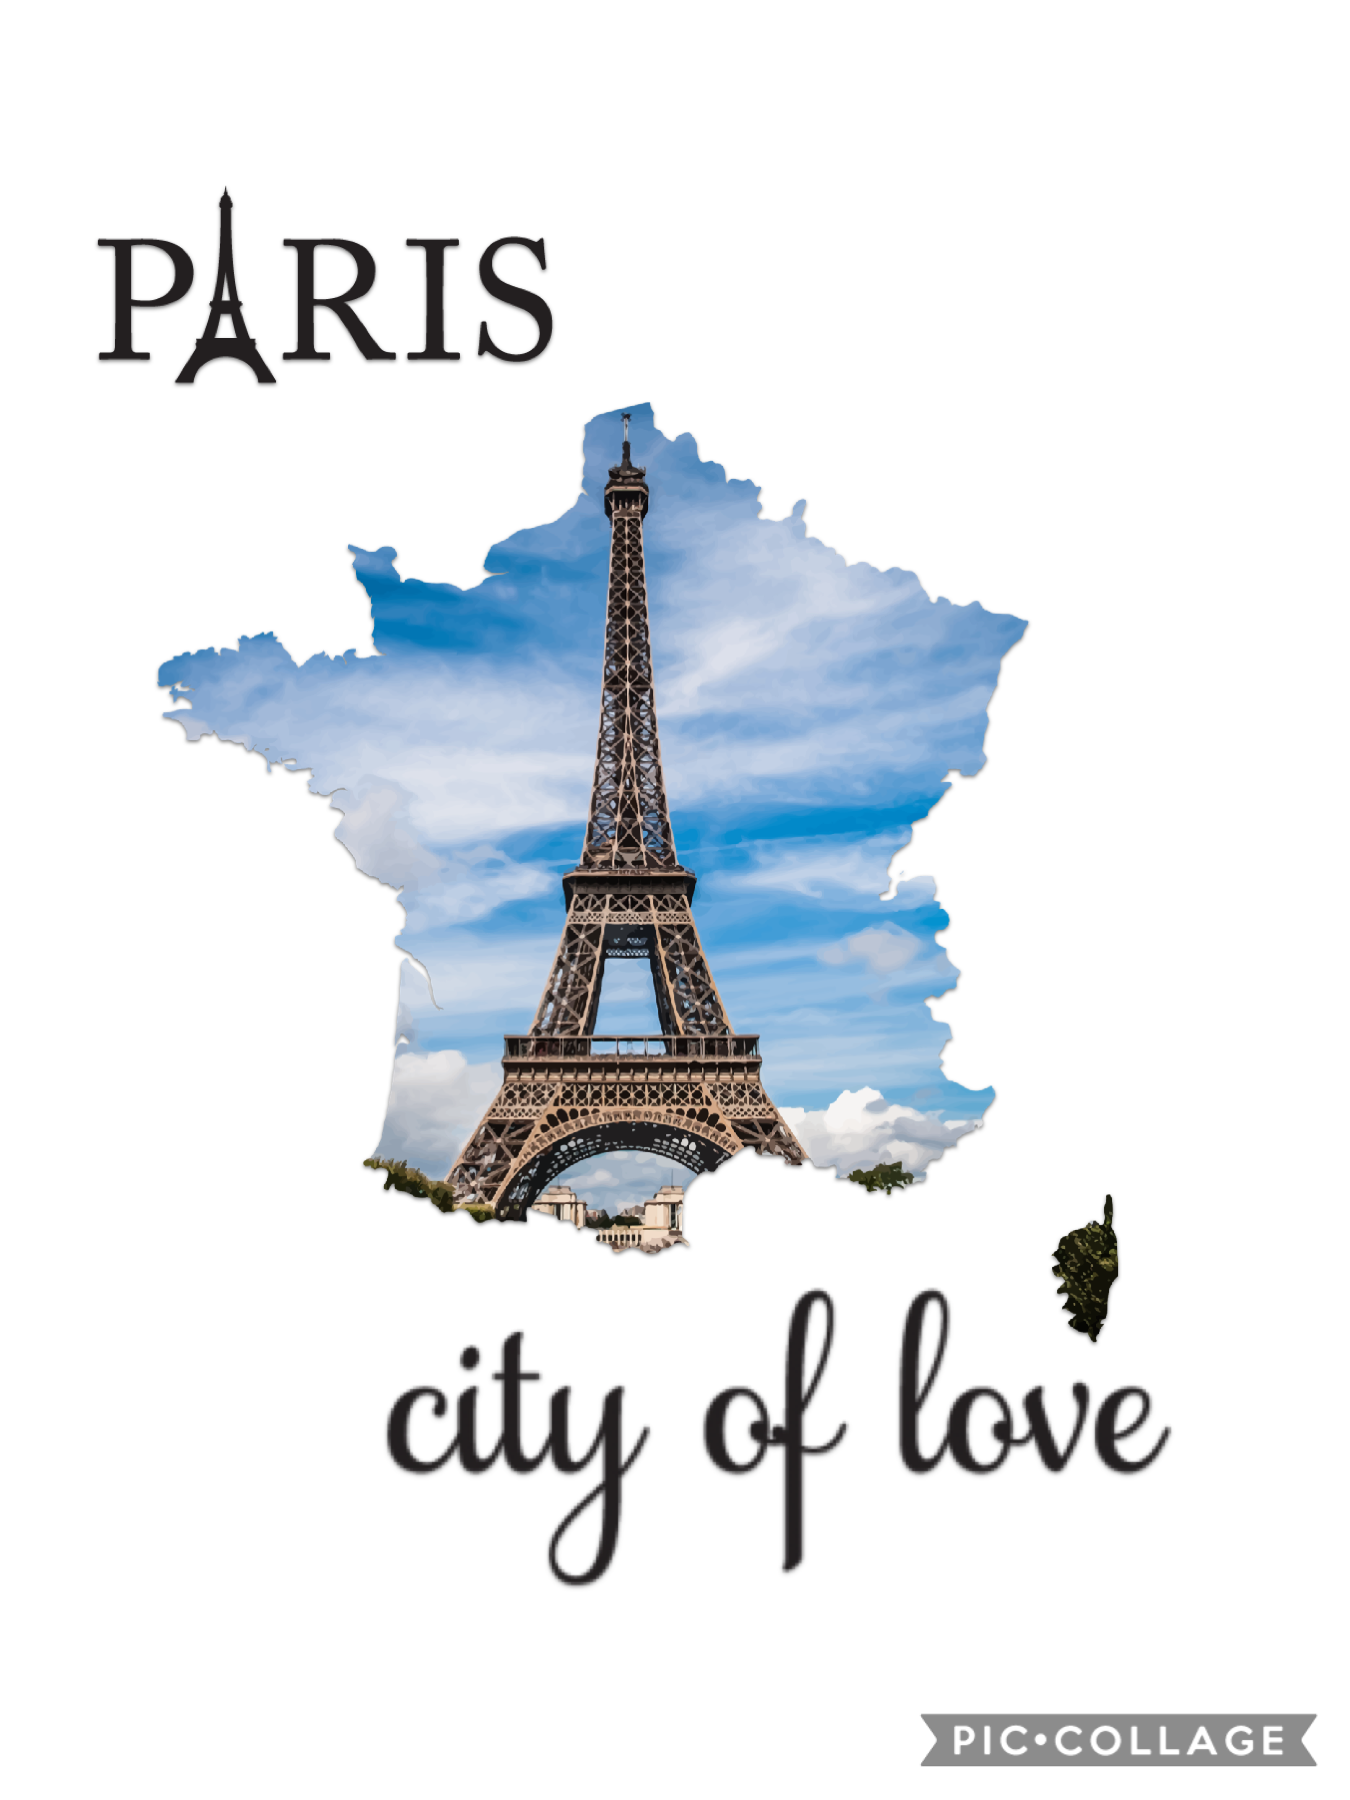 Tap ❤️  I'd really love to visit Paris sometime!!! 😊